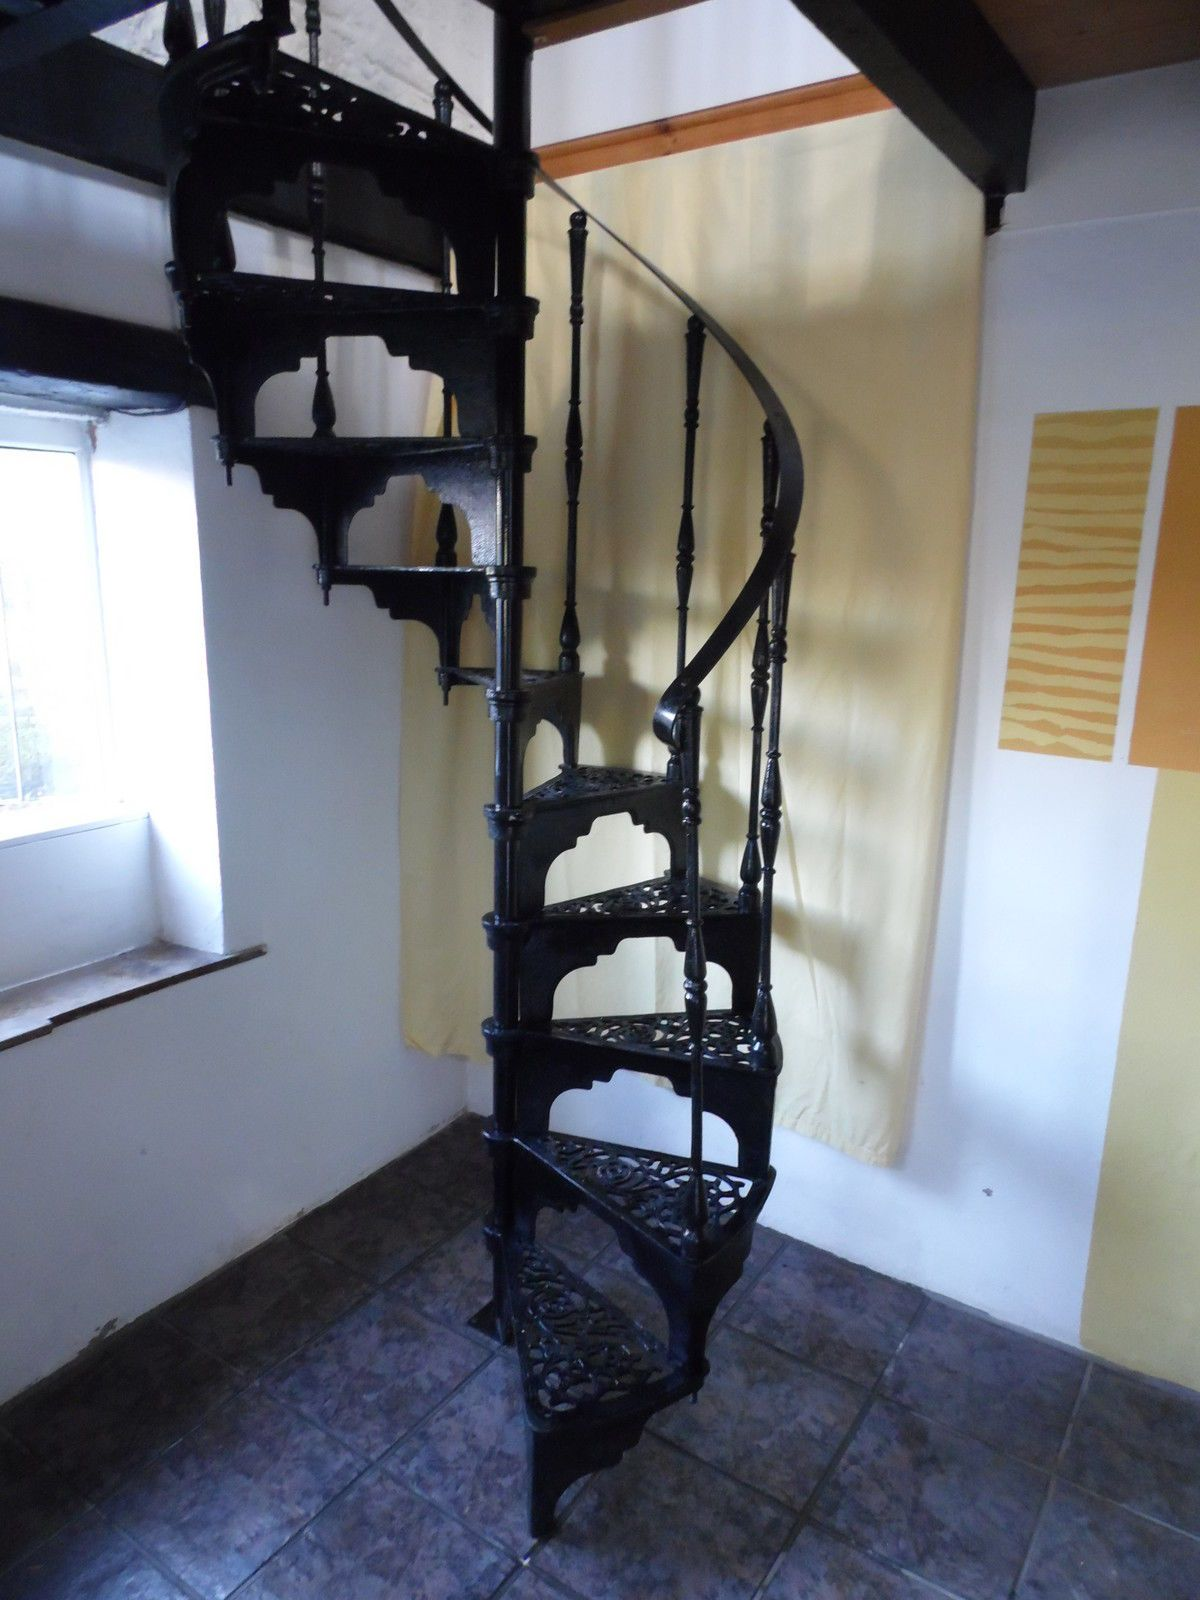 Cast Iron Spiral Staircase Spiral Staircase Staircase Rustic | Spiral Staircase For Sale Ebay | Stair Railing | Stair Case | Wrought Iron Spiral | Handrail | Attic Stairs